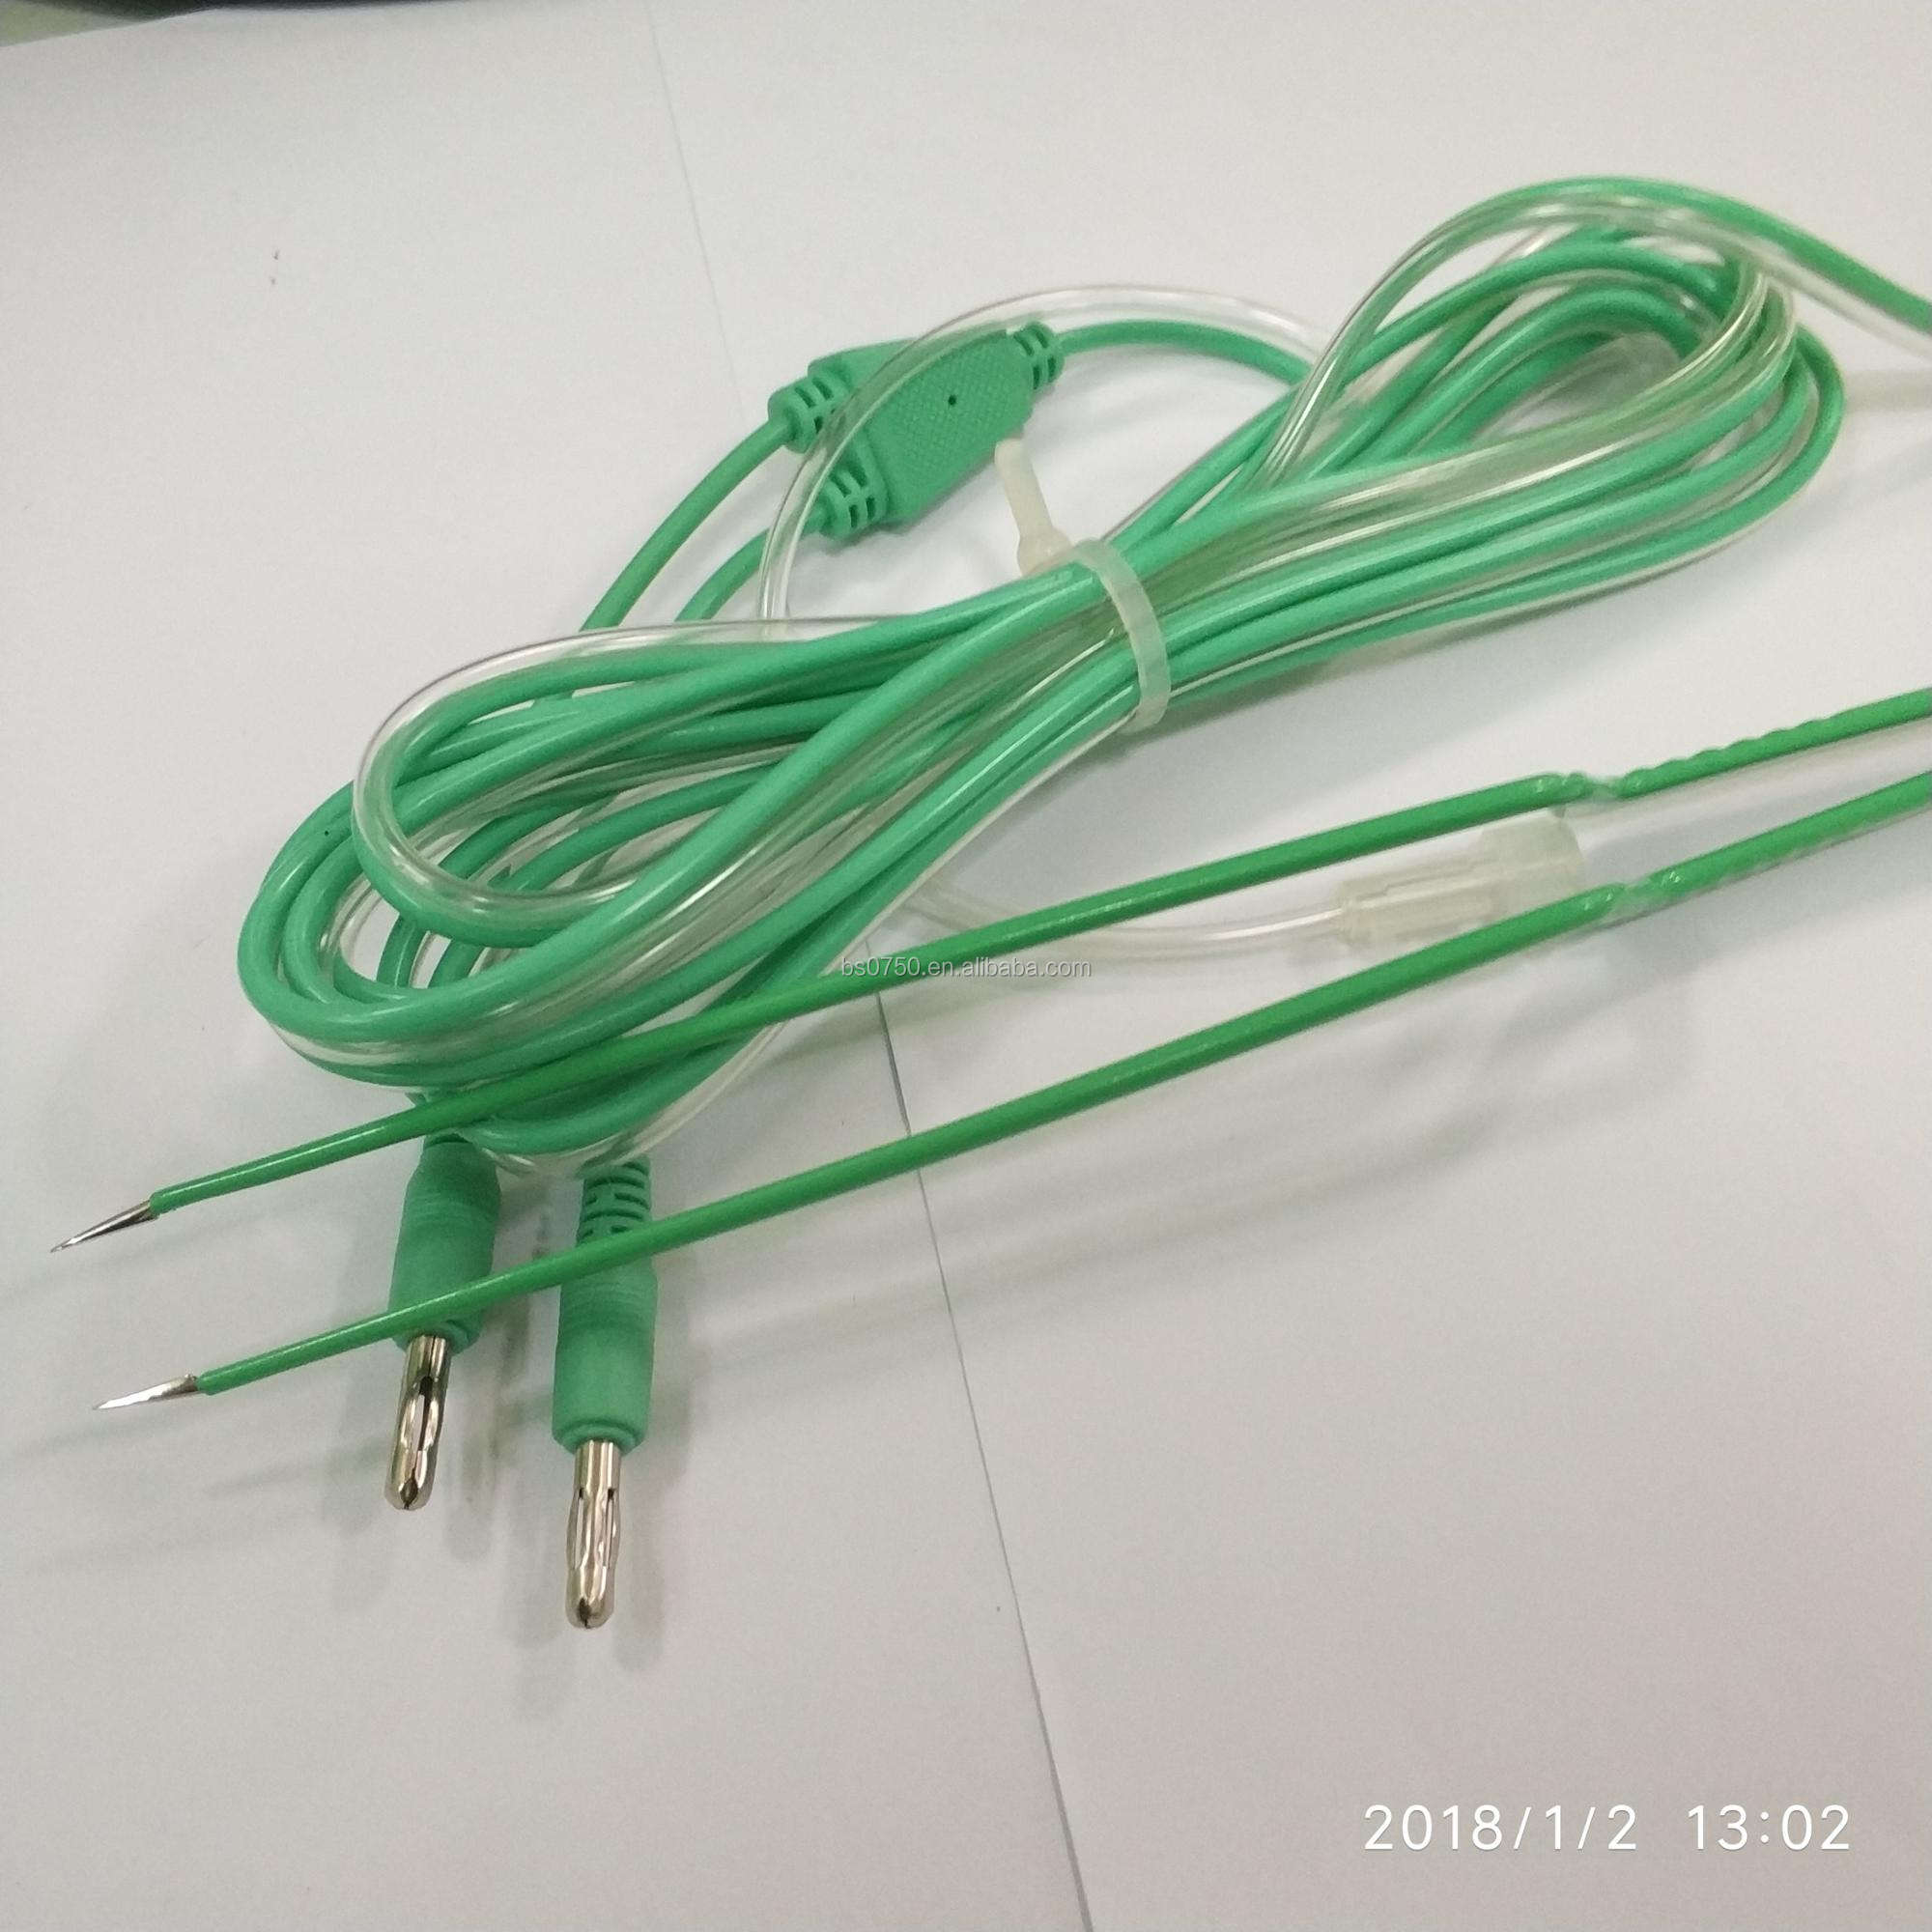 CE Certified OBS Electrosurgical (ESU) Reusable Cable for Bipolar Forceps